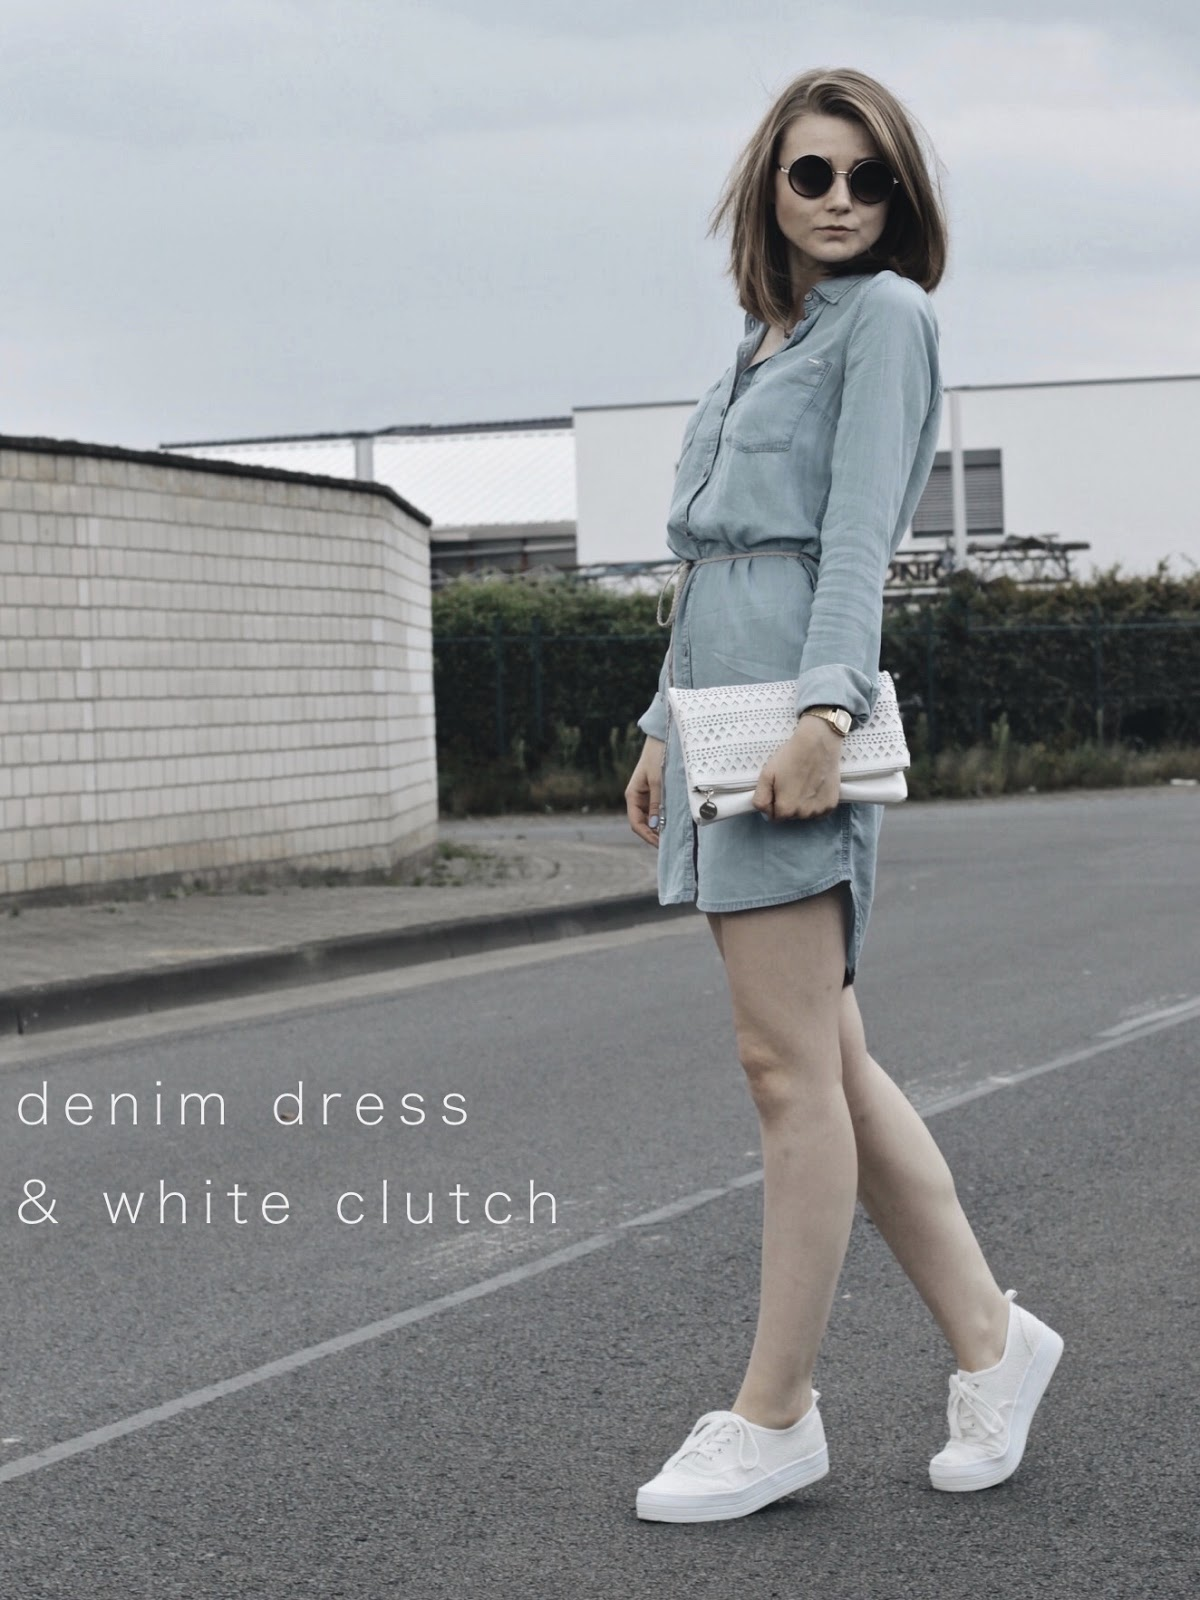 http://www.little-emma.de/2016/08/denim-dress-white-clutch.html